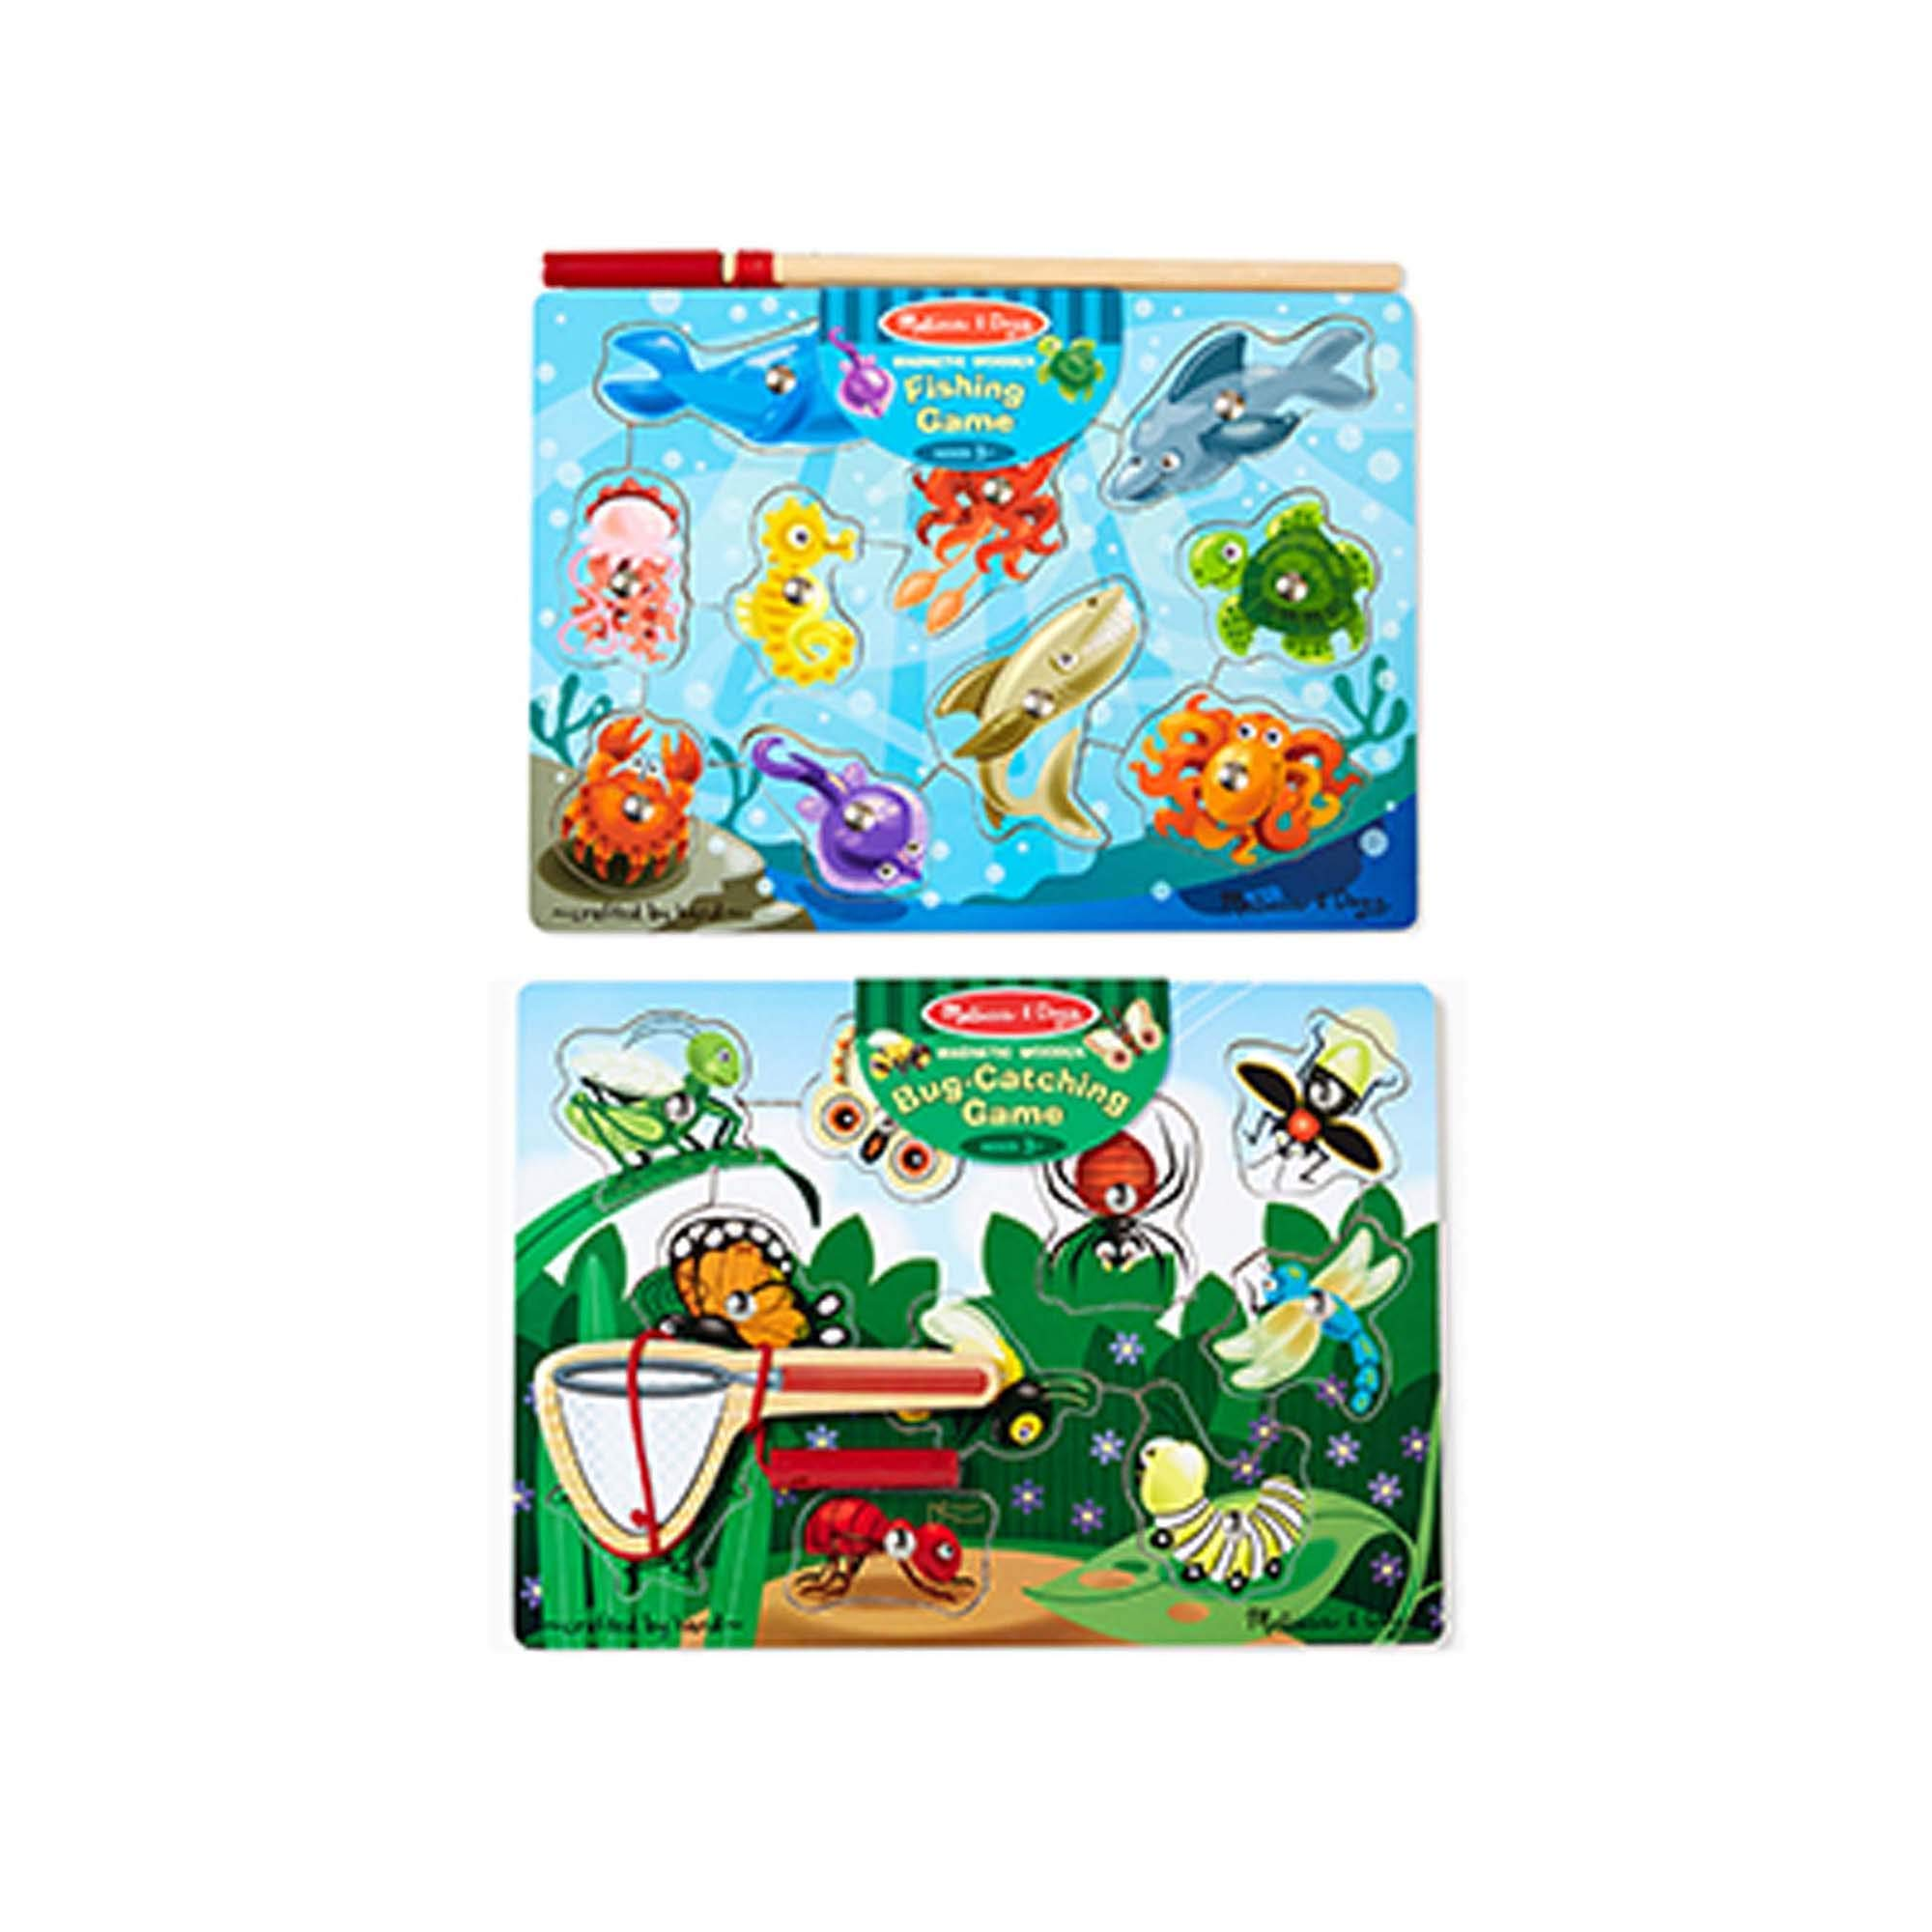 Melissa & Doug Magnetic Wooden Puzzle Game Set, 2-Pack, Fishing and Bug Catching (Sturdy Wooden Construction, 10 Pieces Each, Great Gift for Girls and Boys - Best for 3, 4, and 5 Year Olds) by Melissa & Doug